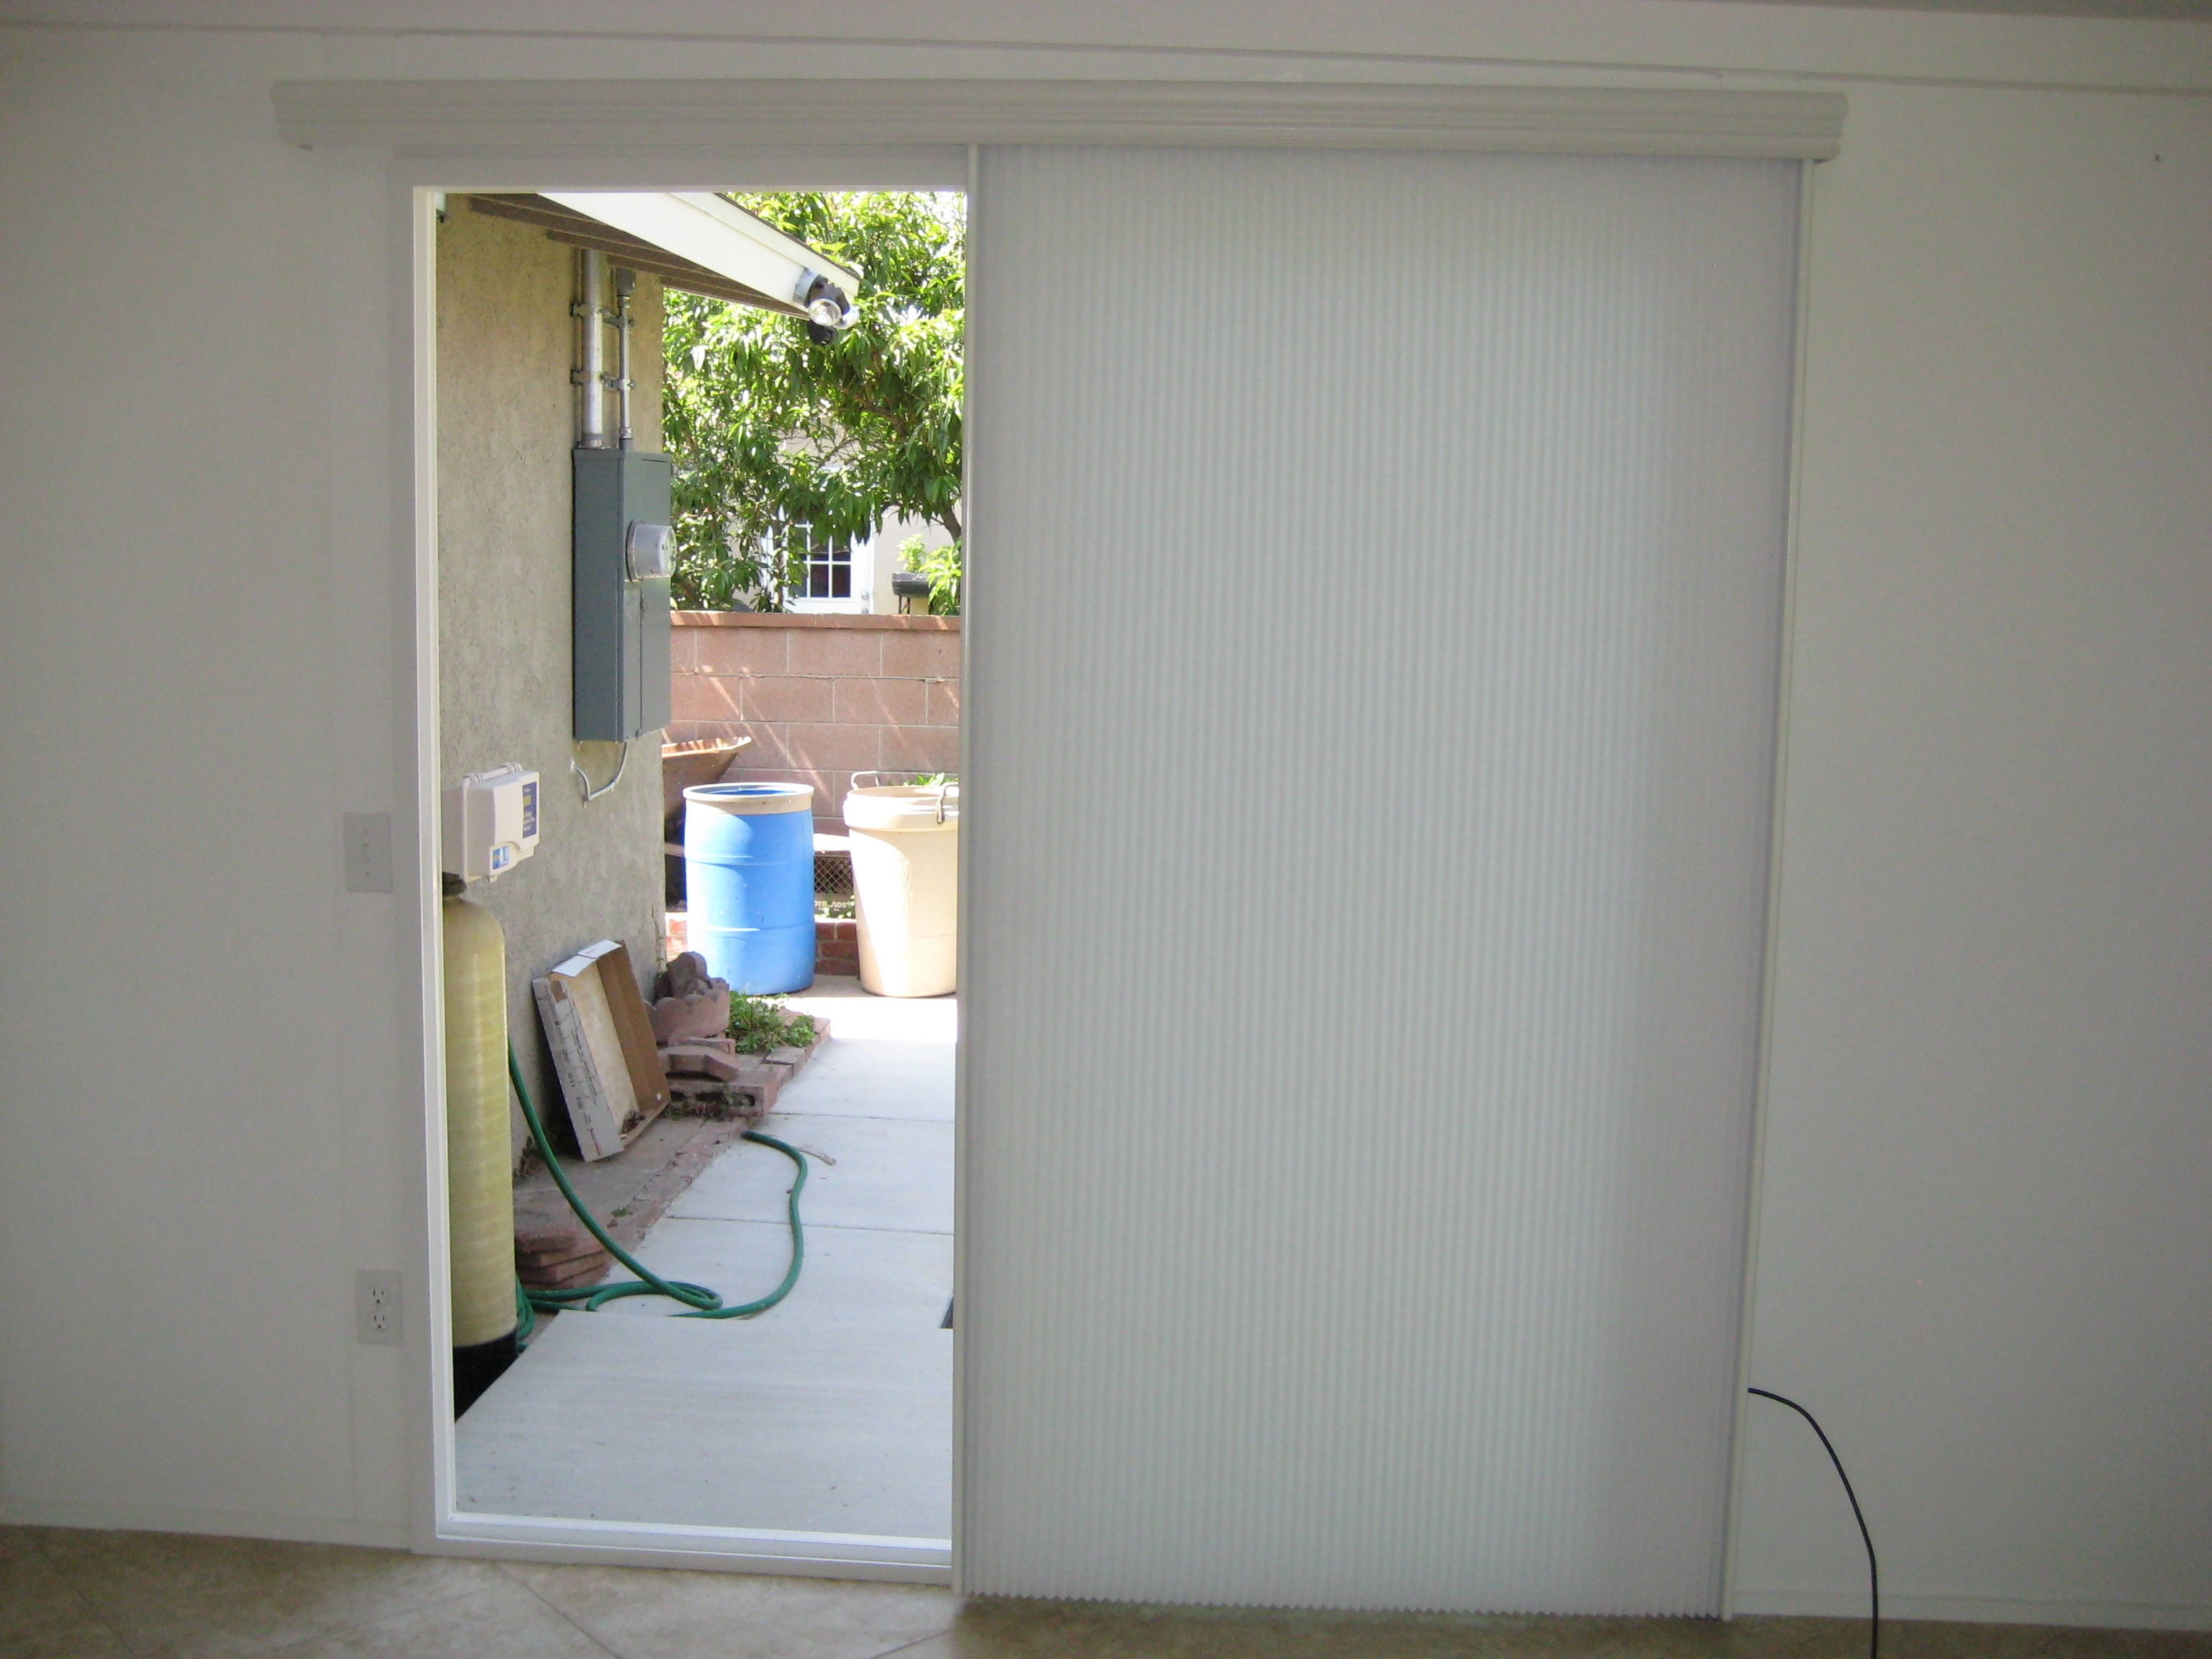 handballtunisie for tremendous in doors with inside l sliding door built glass org blinds